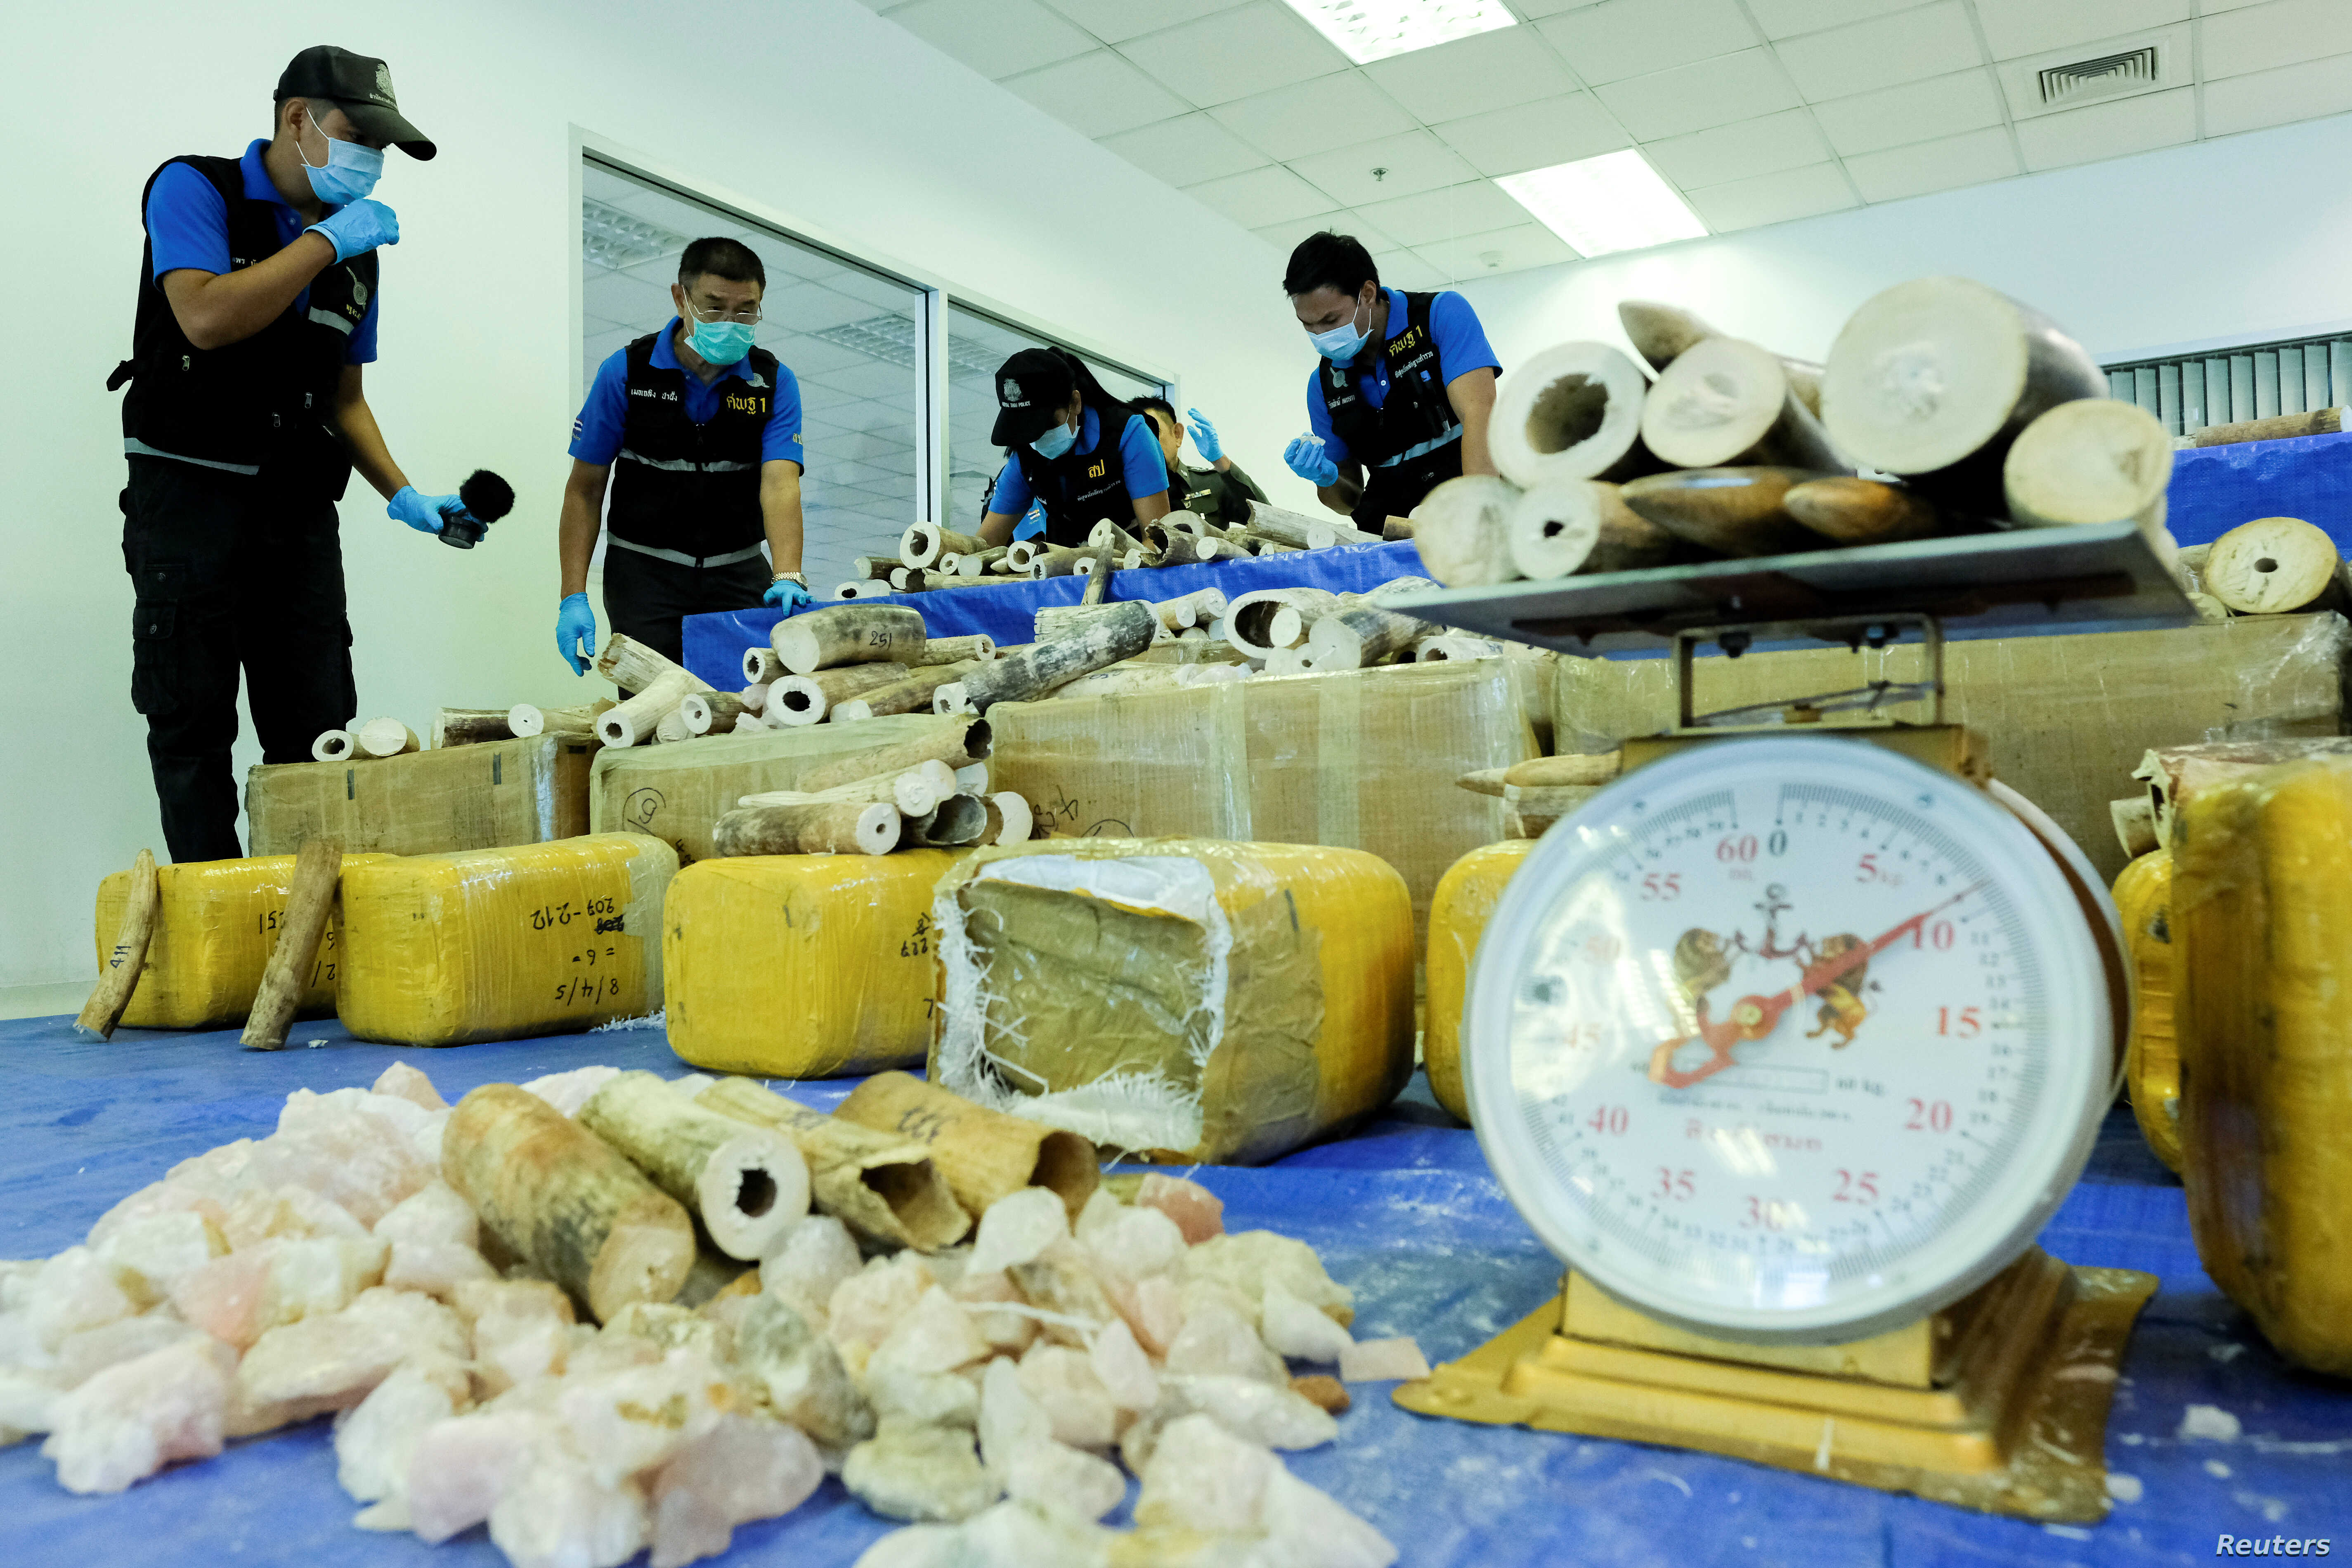 FILE - Thai forensic experts collect DNA samples from a confiscated elephant tusk, coming from Malawi, at Suvarnabhumi International Airport in Bangkok, Thailand, March 7, 2017.